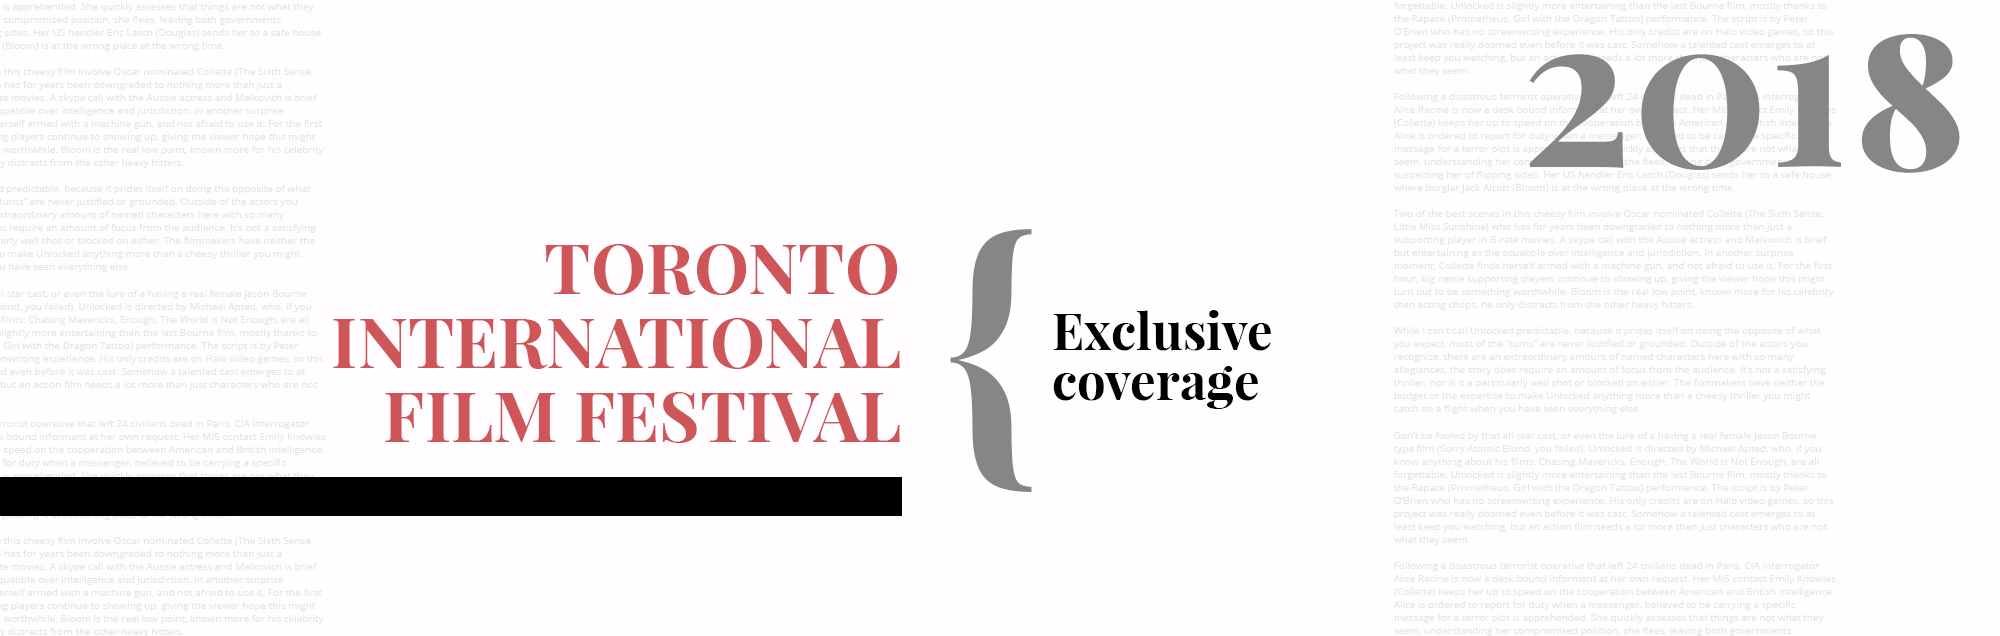 Toronto International Film Festival 2018